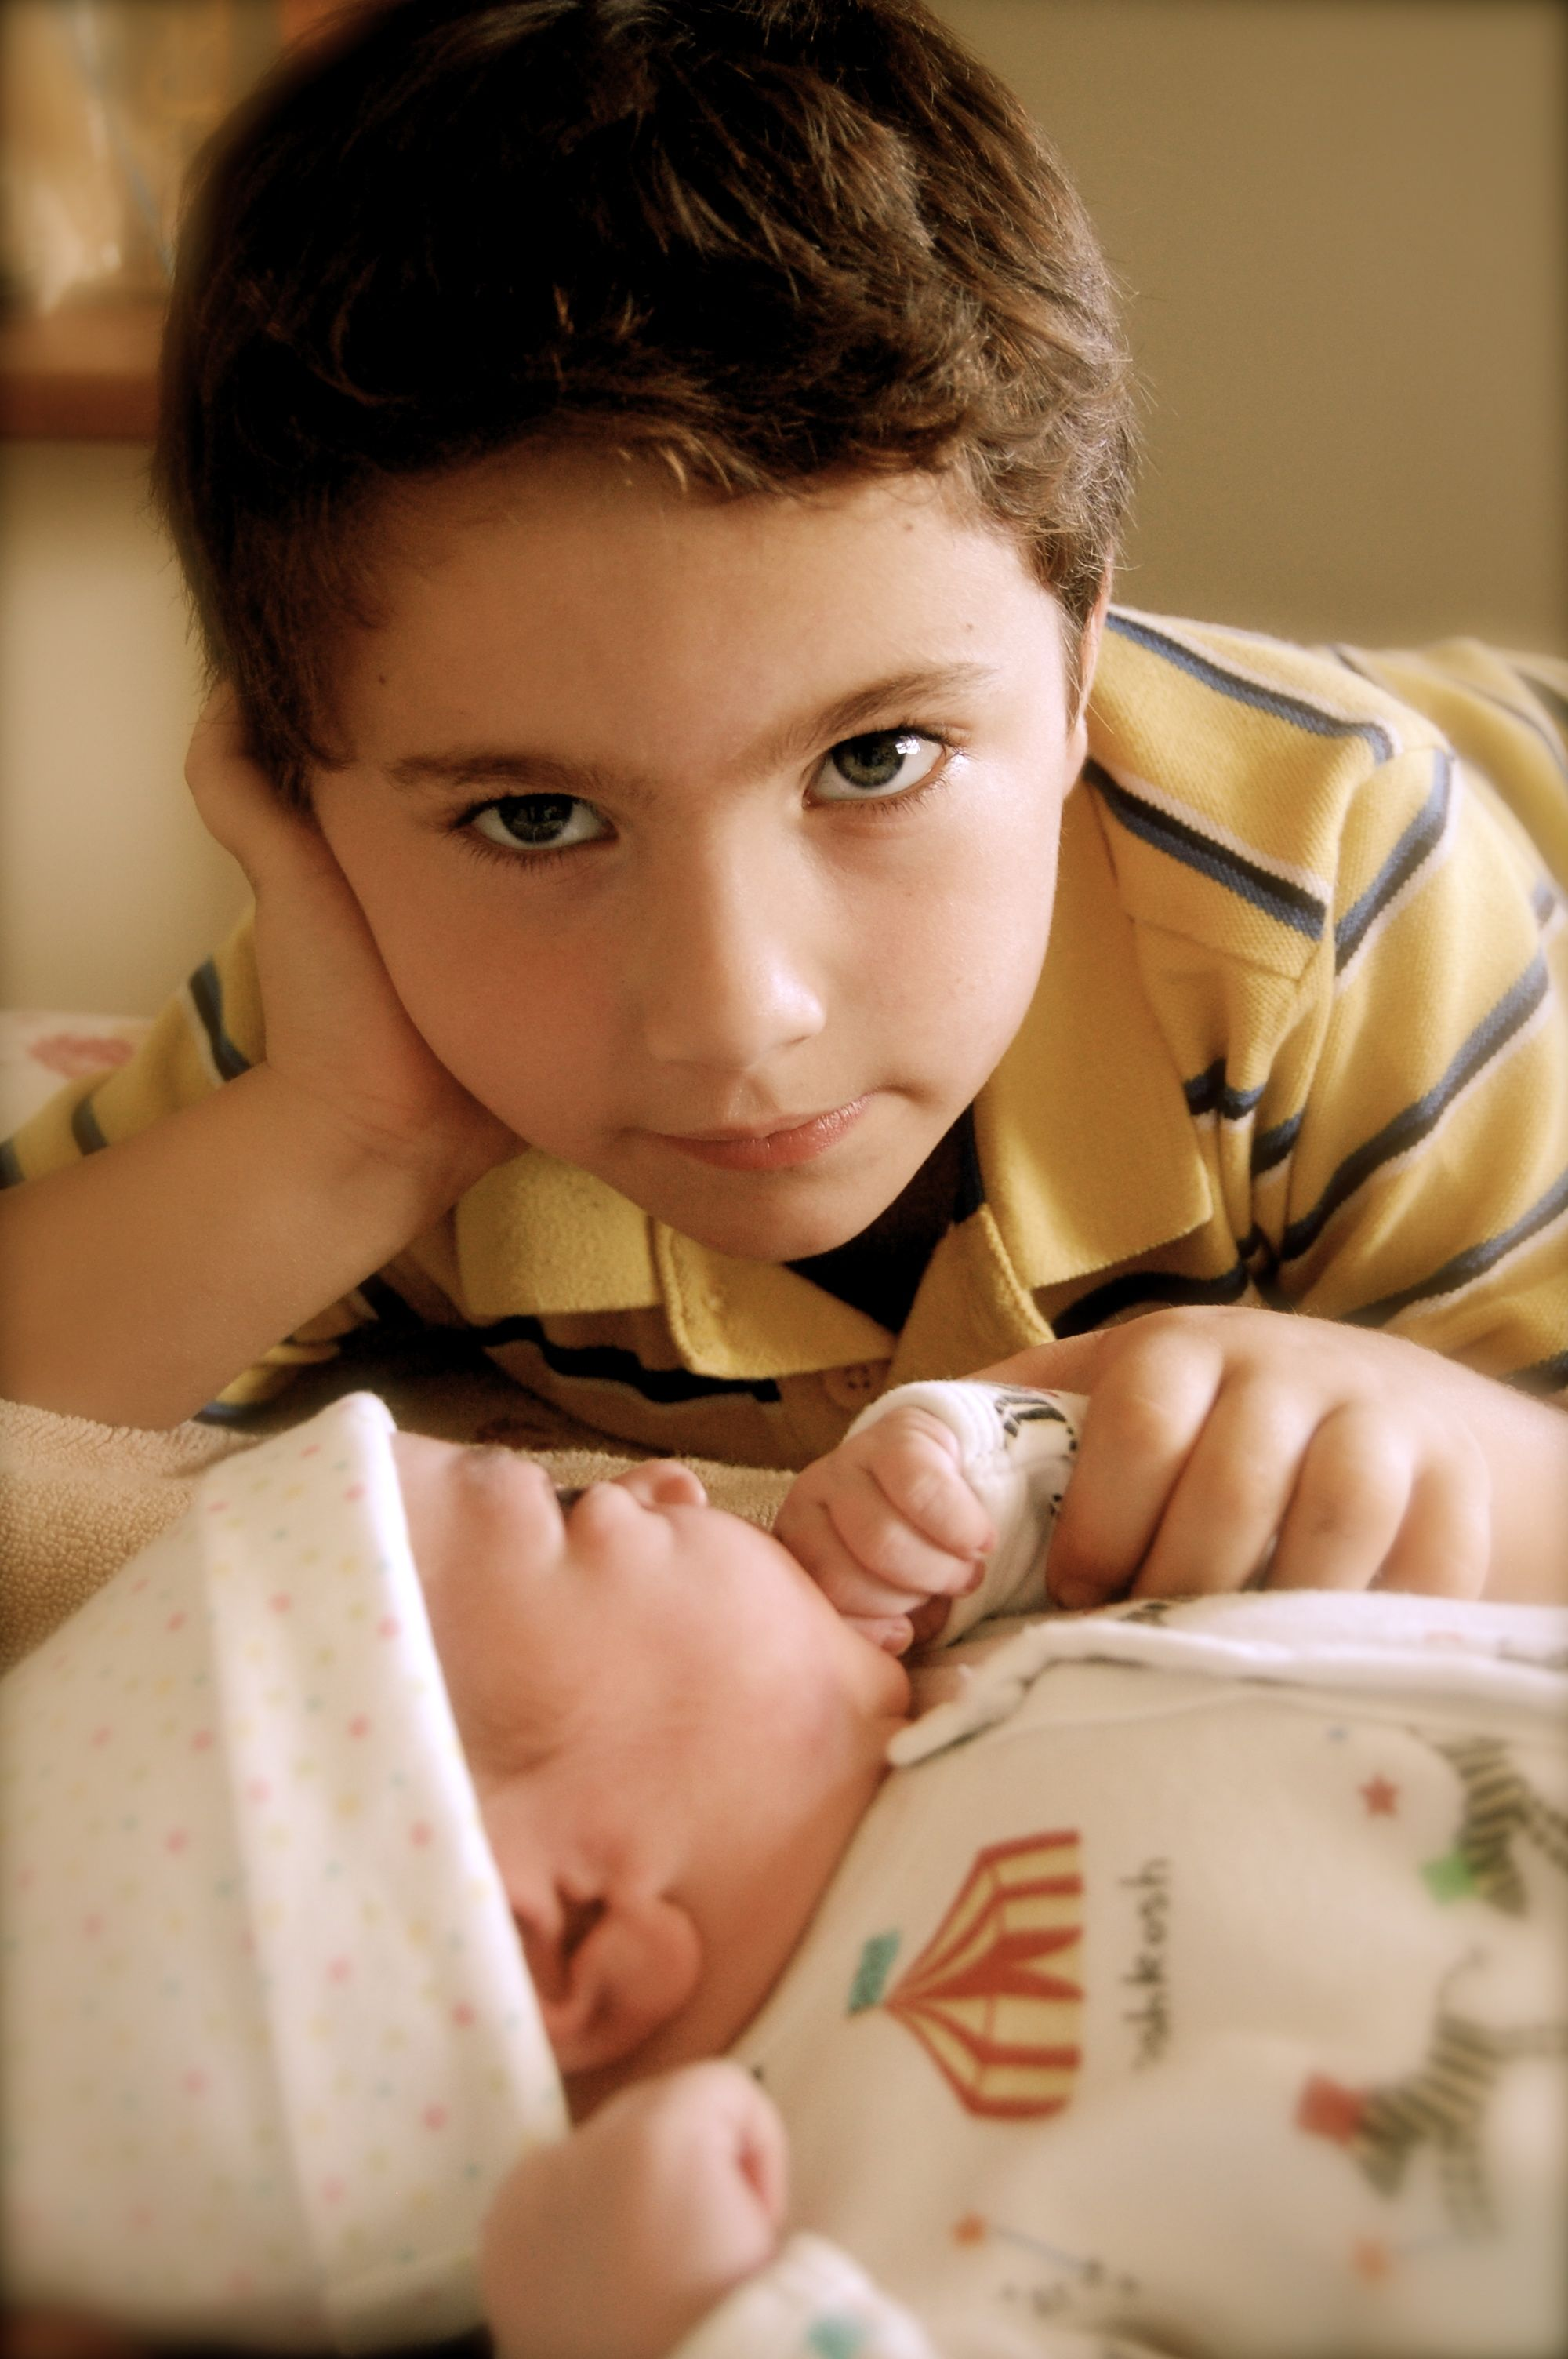 Midwifery Services Worland brother and baby